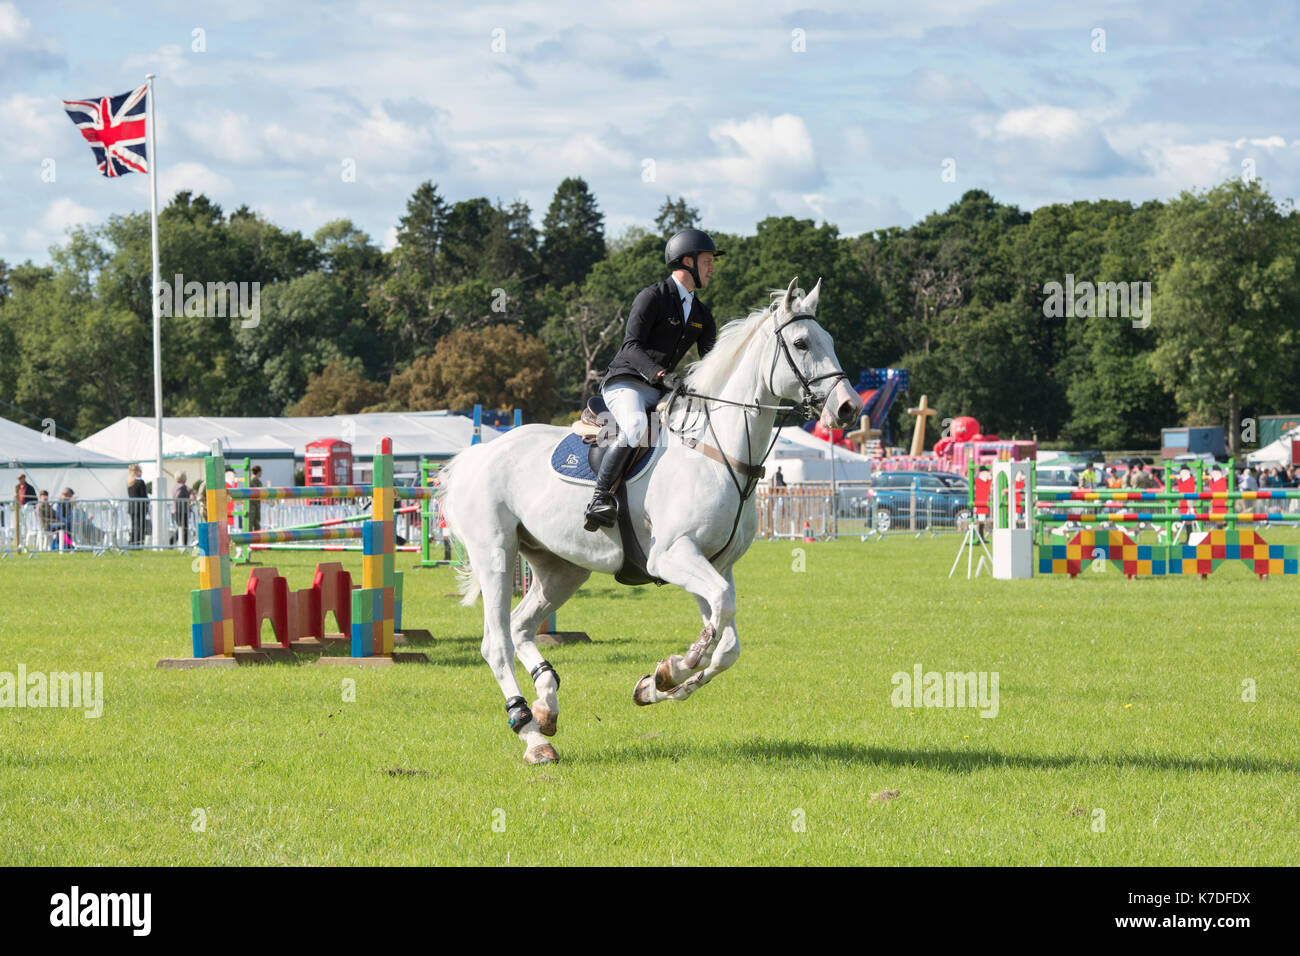 Show jumping at at the Henley country show, Oxfordshire. UK - Stock Image